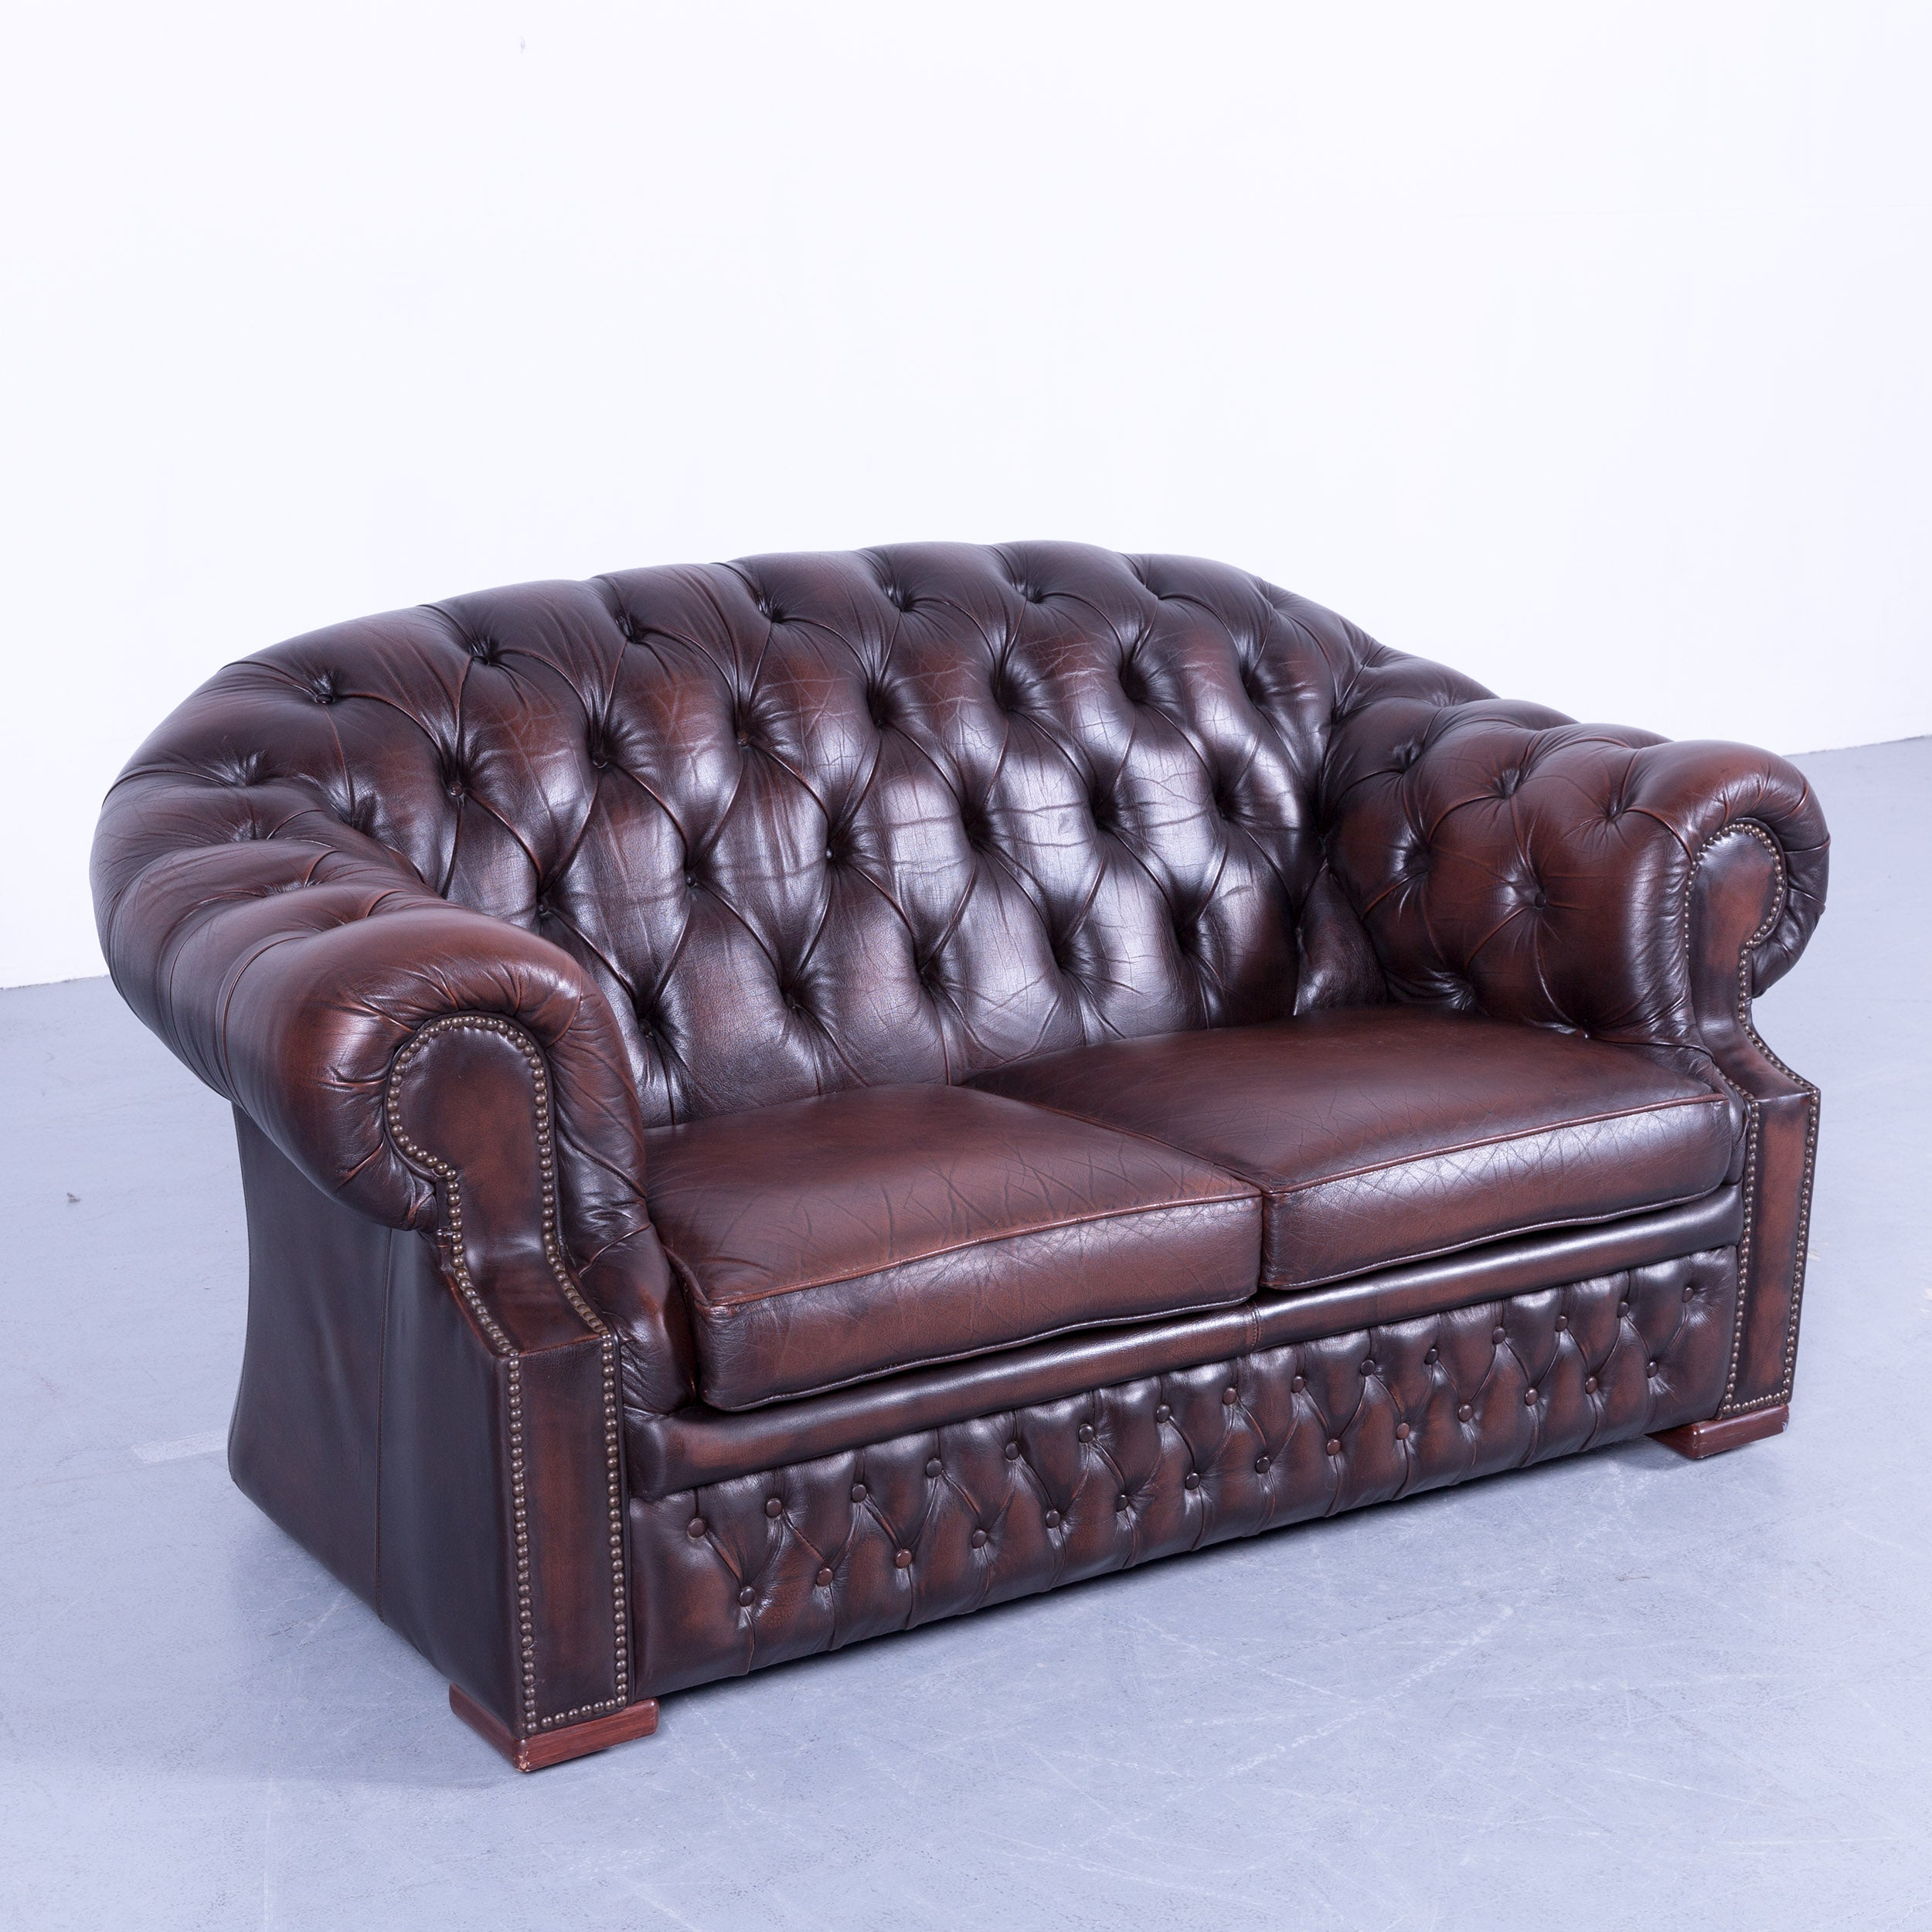 Vintage Sofa Und Sessel Centurion Chesterfield Sofa Brown Mocca Two Seat Vintage Retro Couch